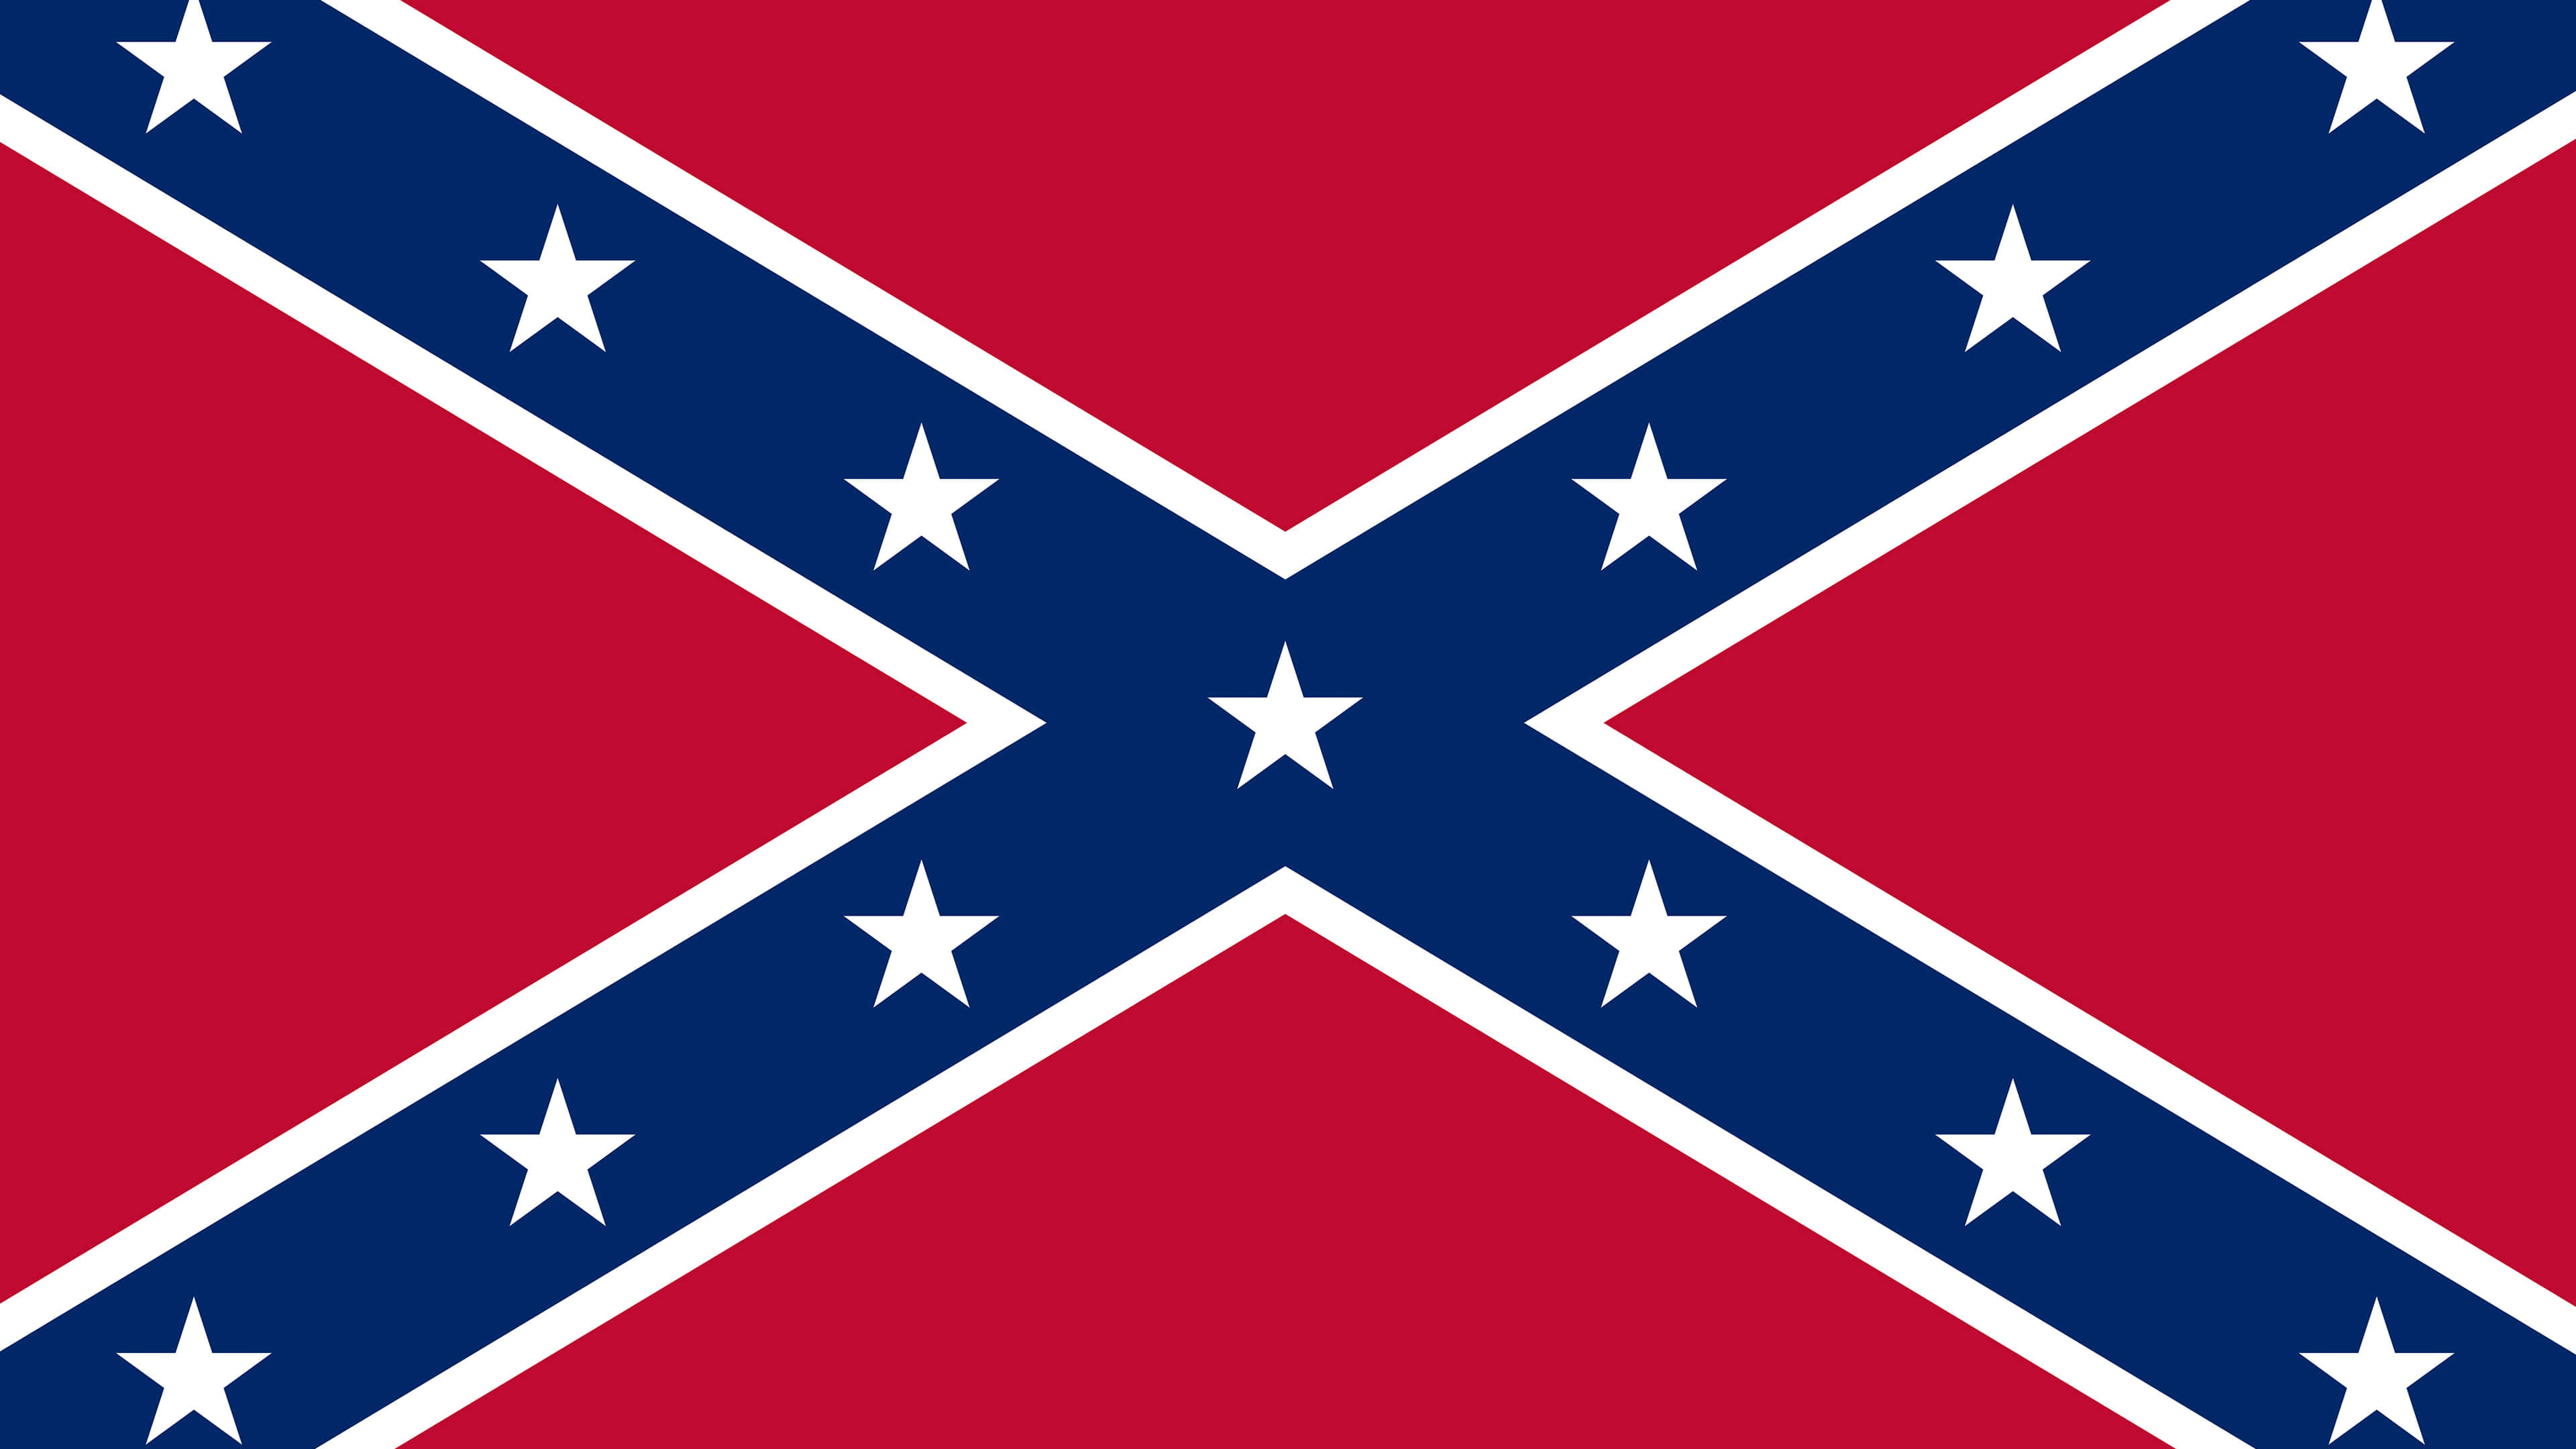 confederate flag uhd 4k wallpaper